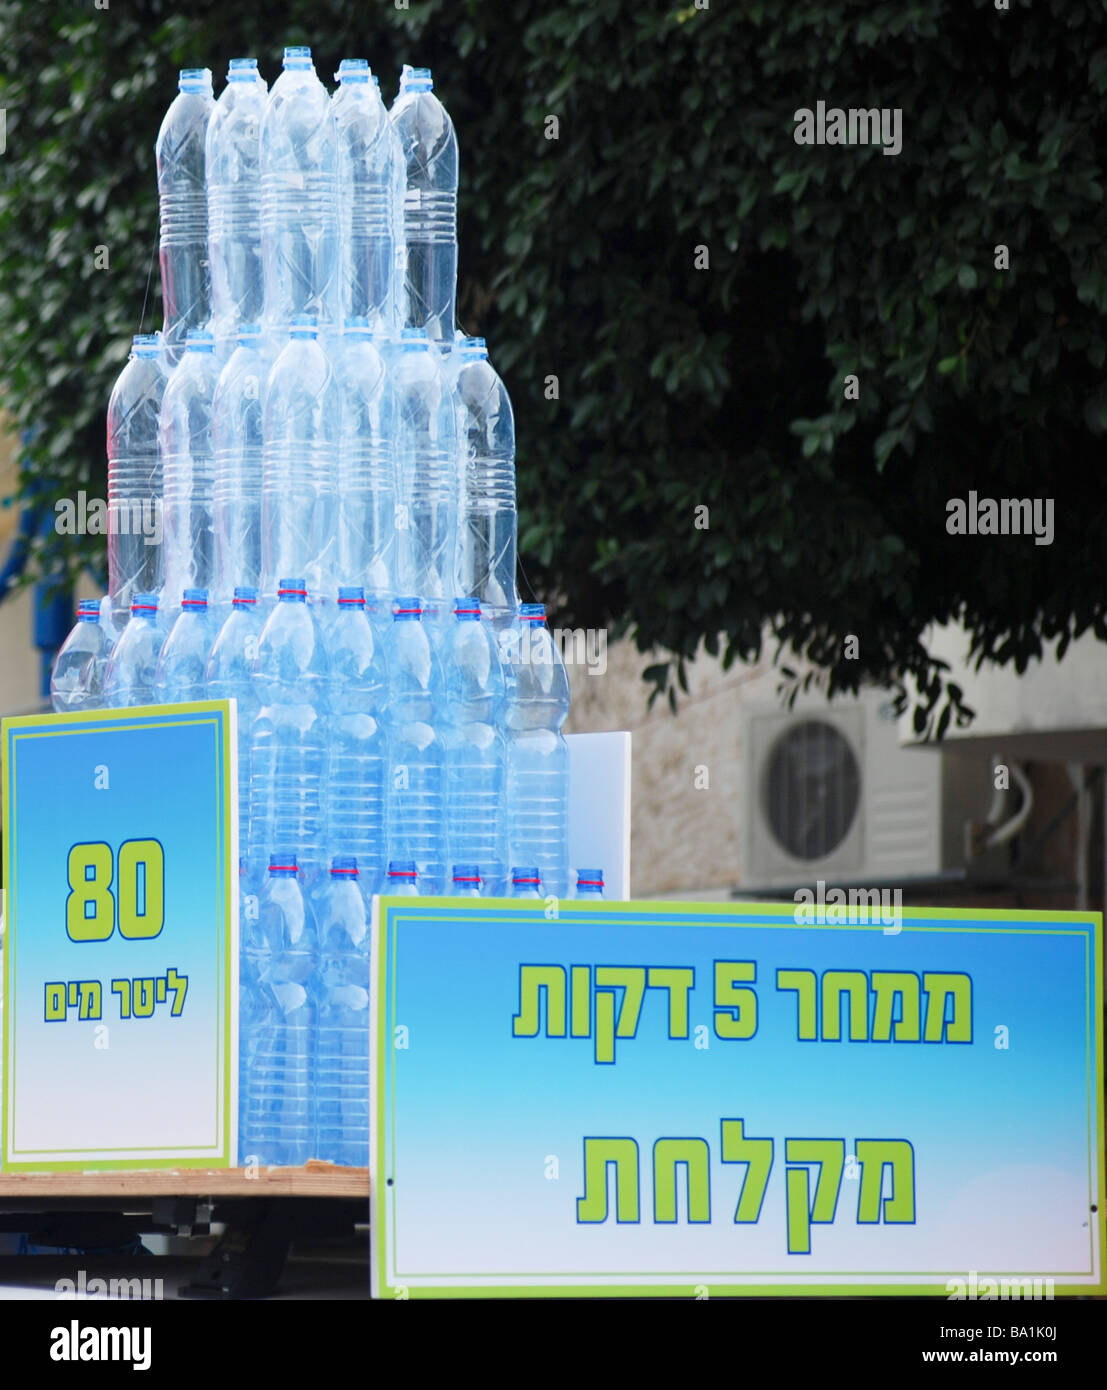 Save water display showing mineral water bottles containing 80 litres which is the amount of water used in a 5 minute - Stock Image